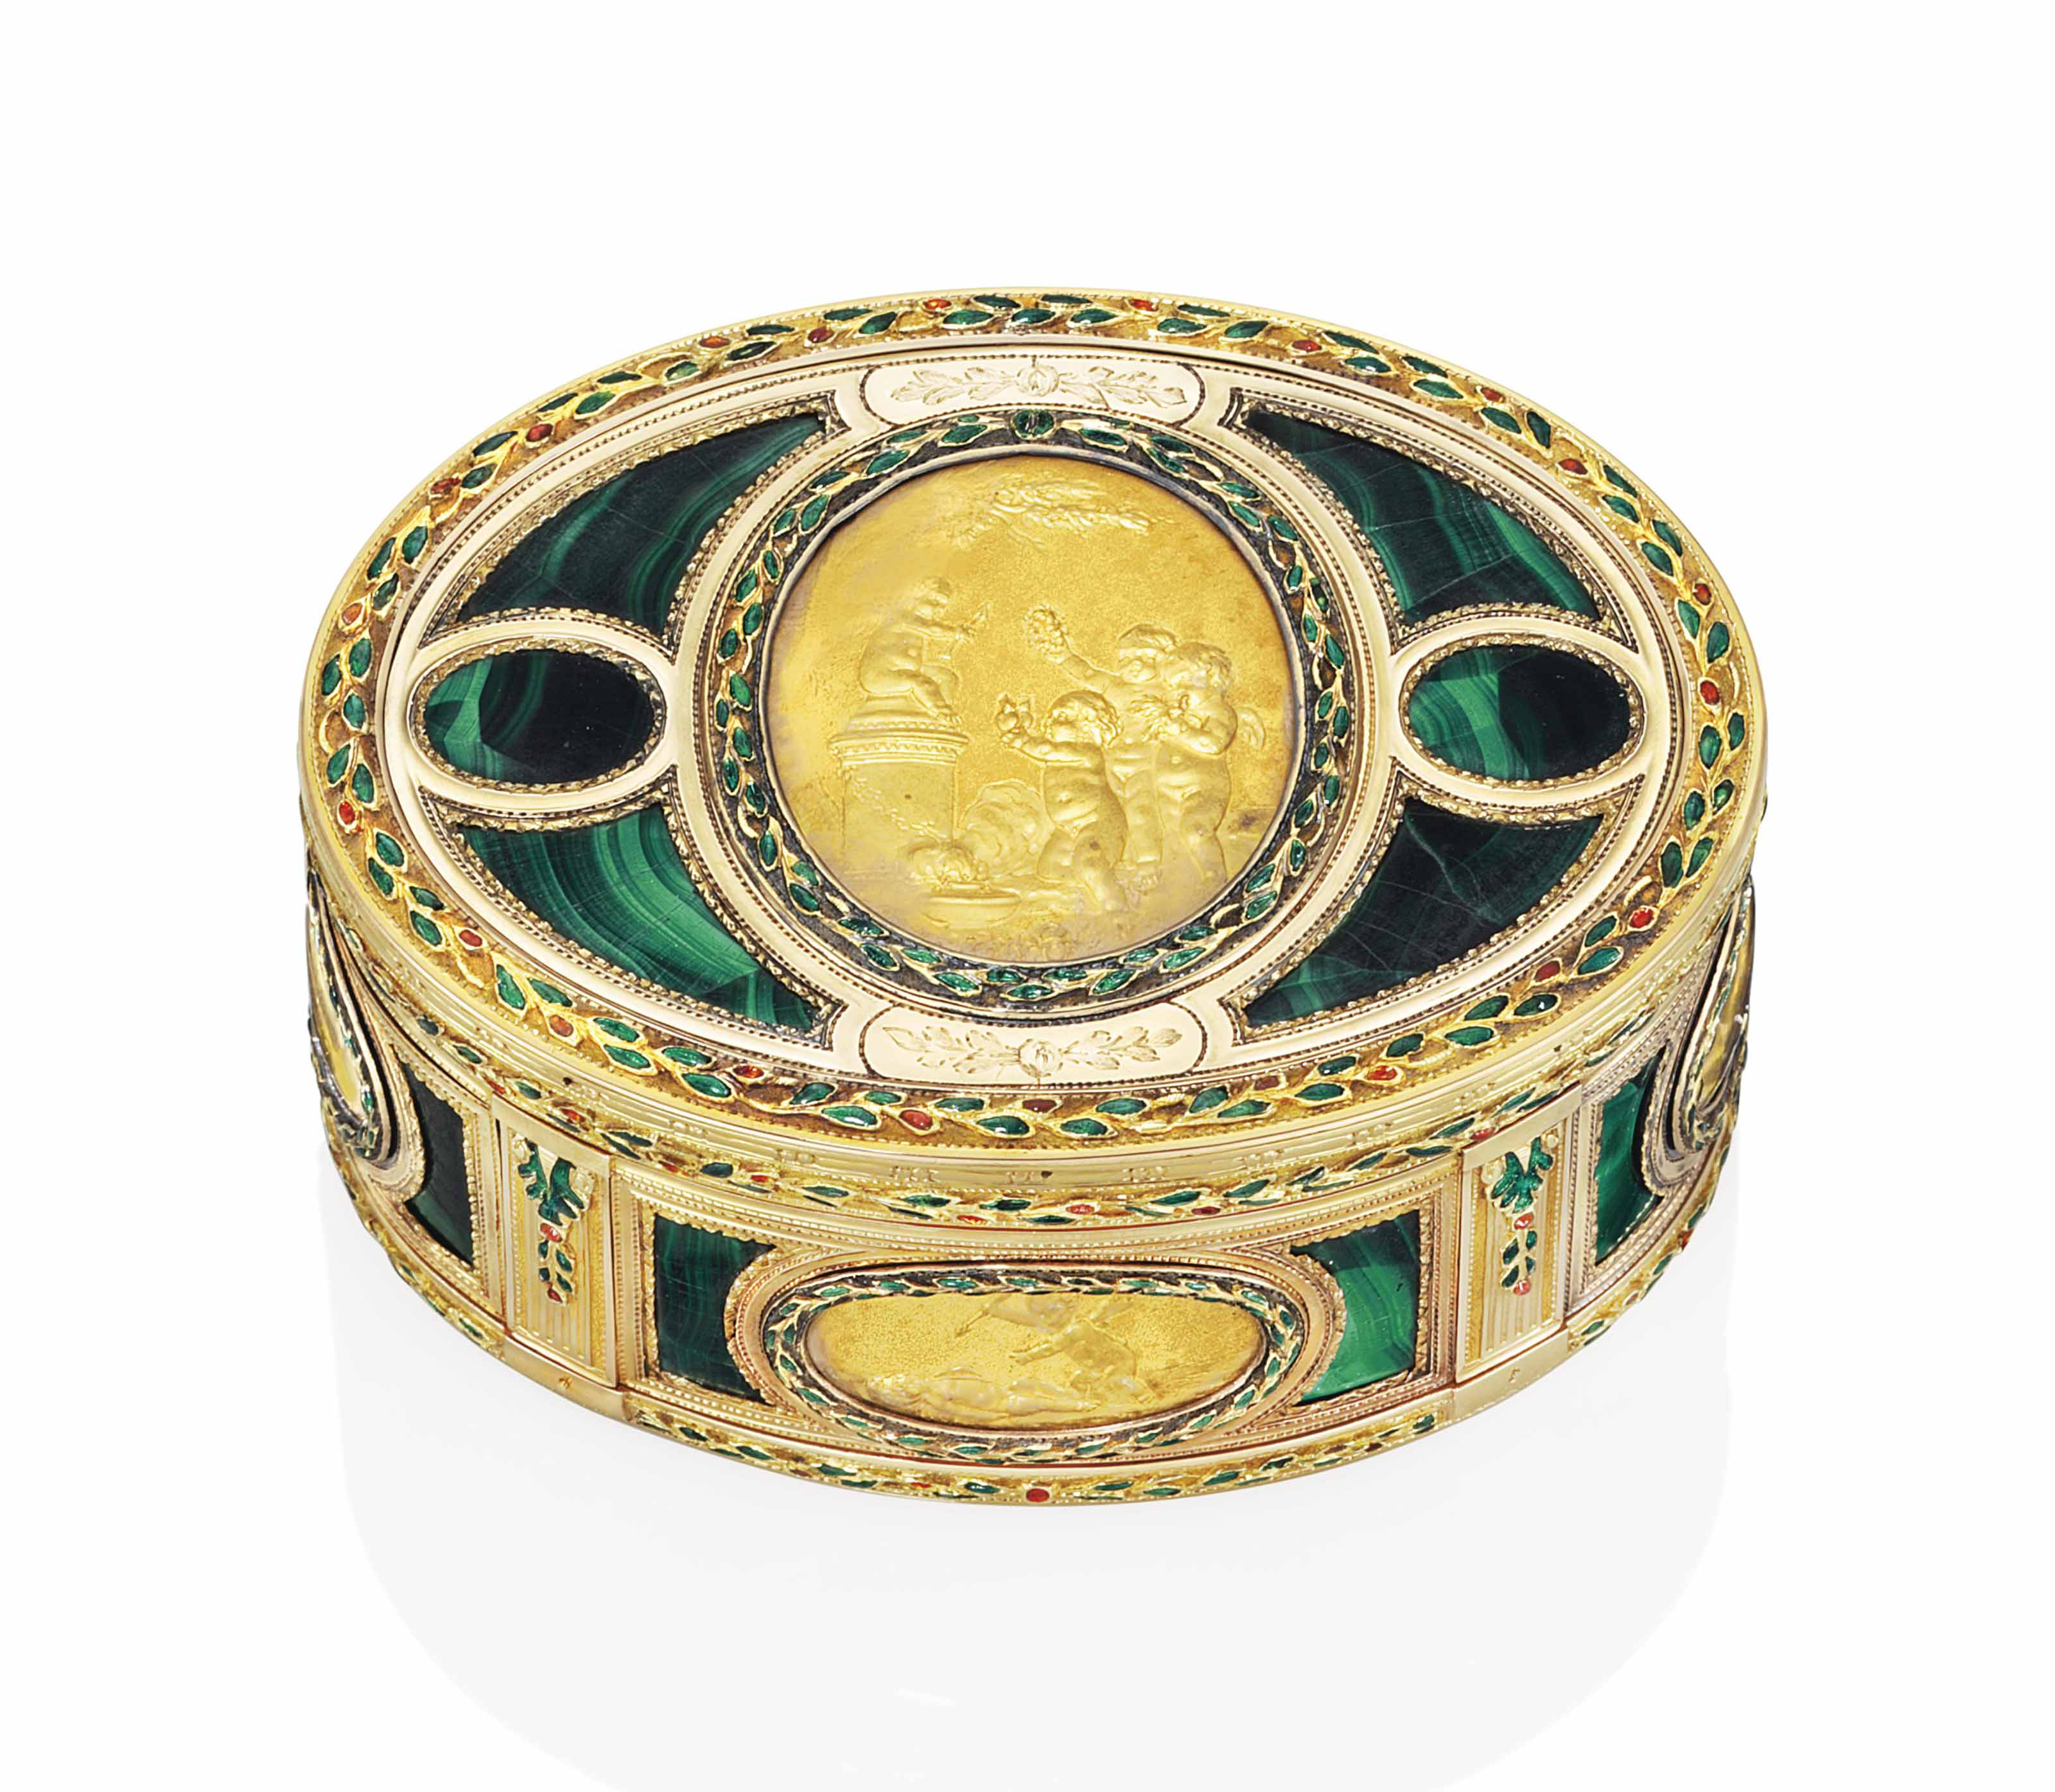 AN IMPORTANT LOUIS XV ENAMELLED GOLD AND HARDSTONE SNUFF-BOX